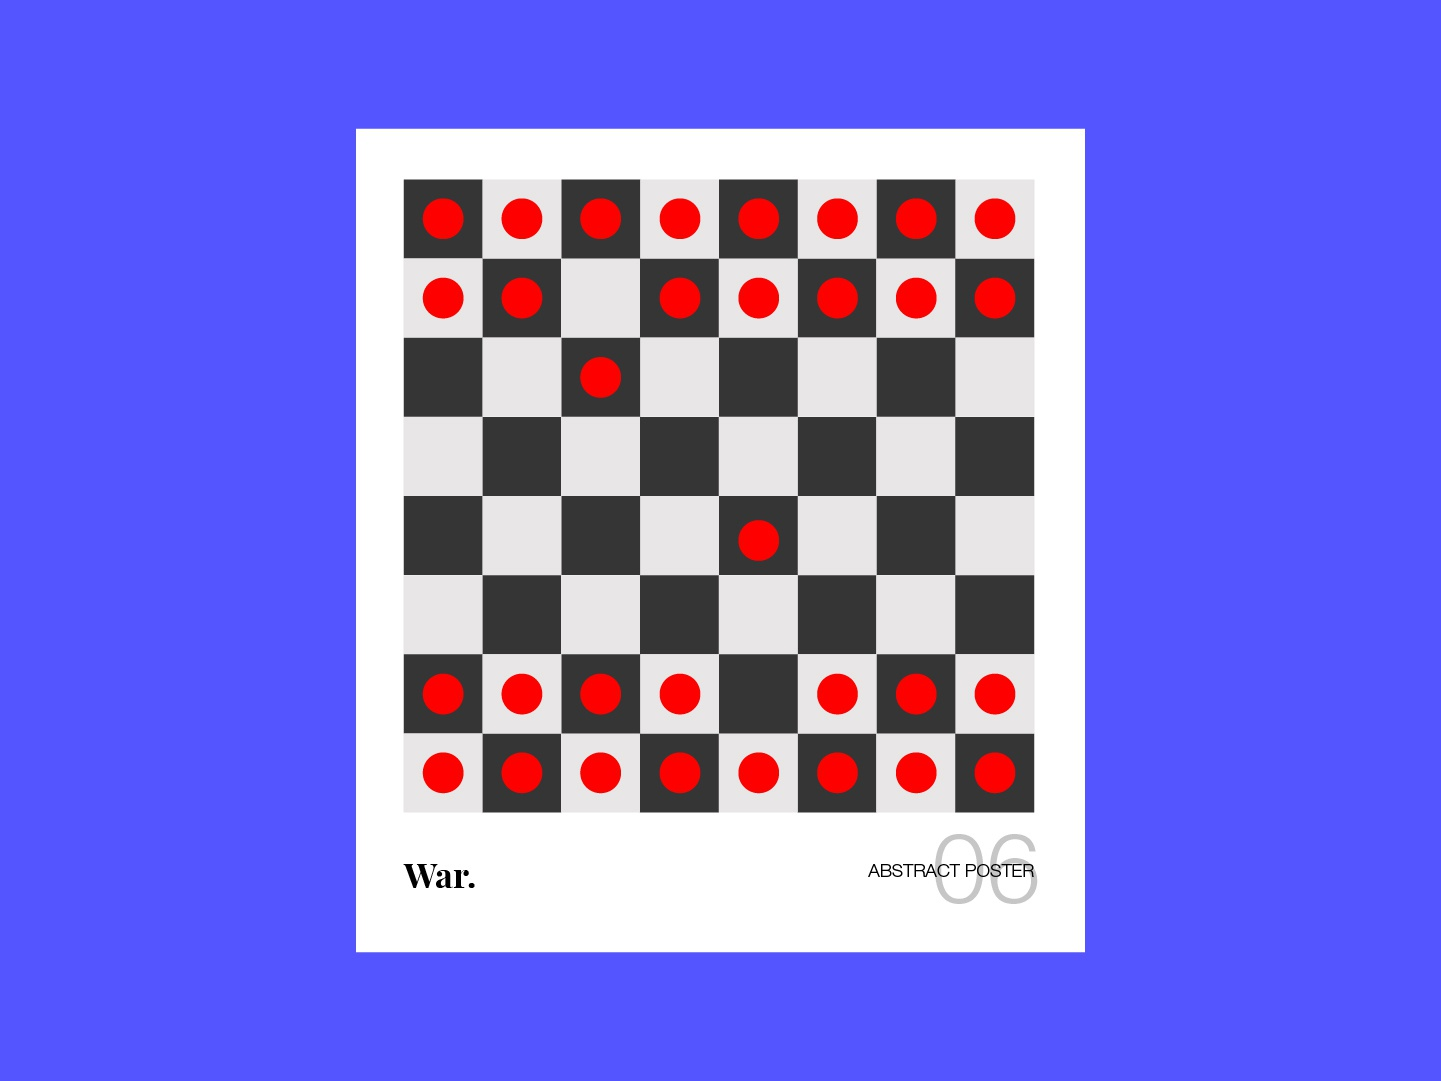 Abstract. Abstract Poster Series 06 design illustration art bangalore abstract poster series blood dot red ui poster abstract poster design black and white abstract design abstract poster abstract chess war